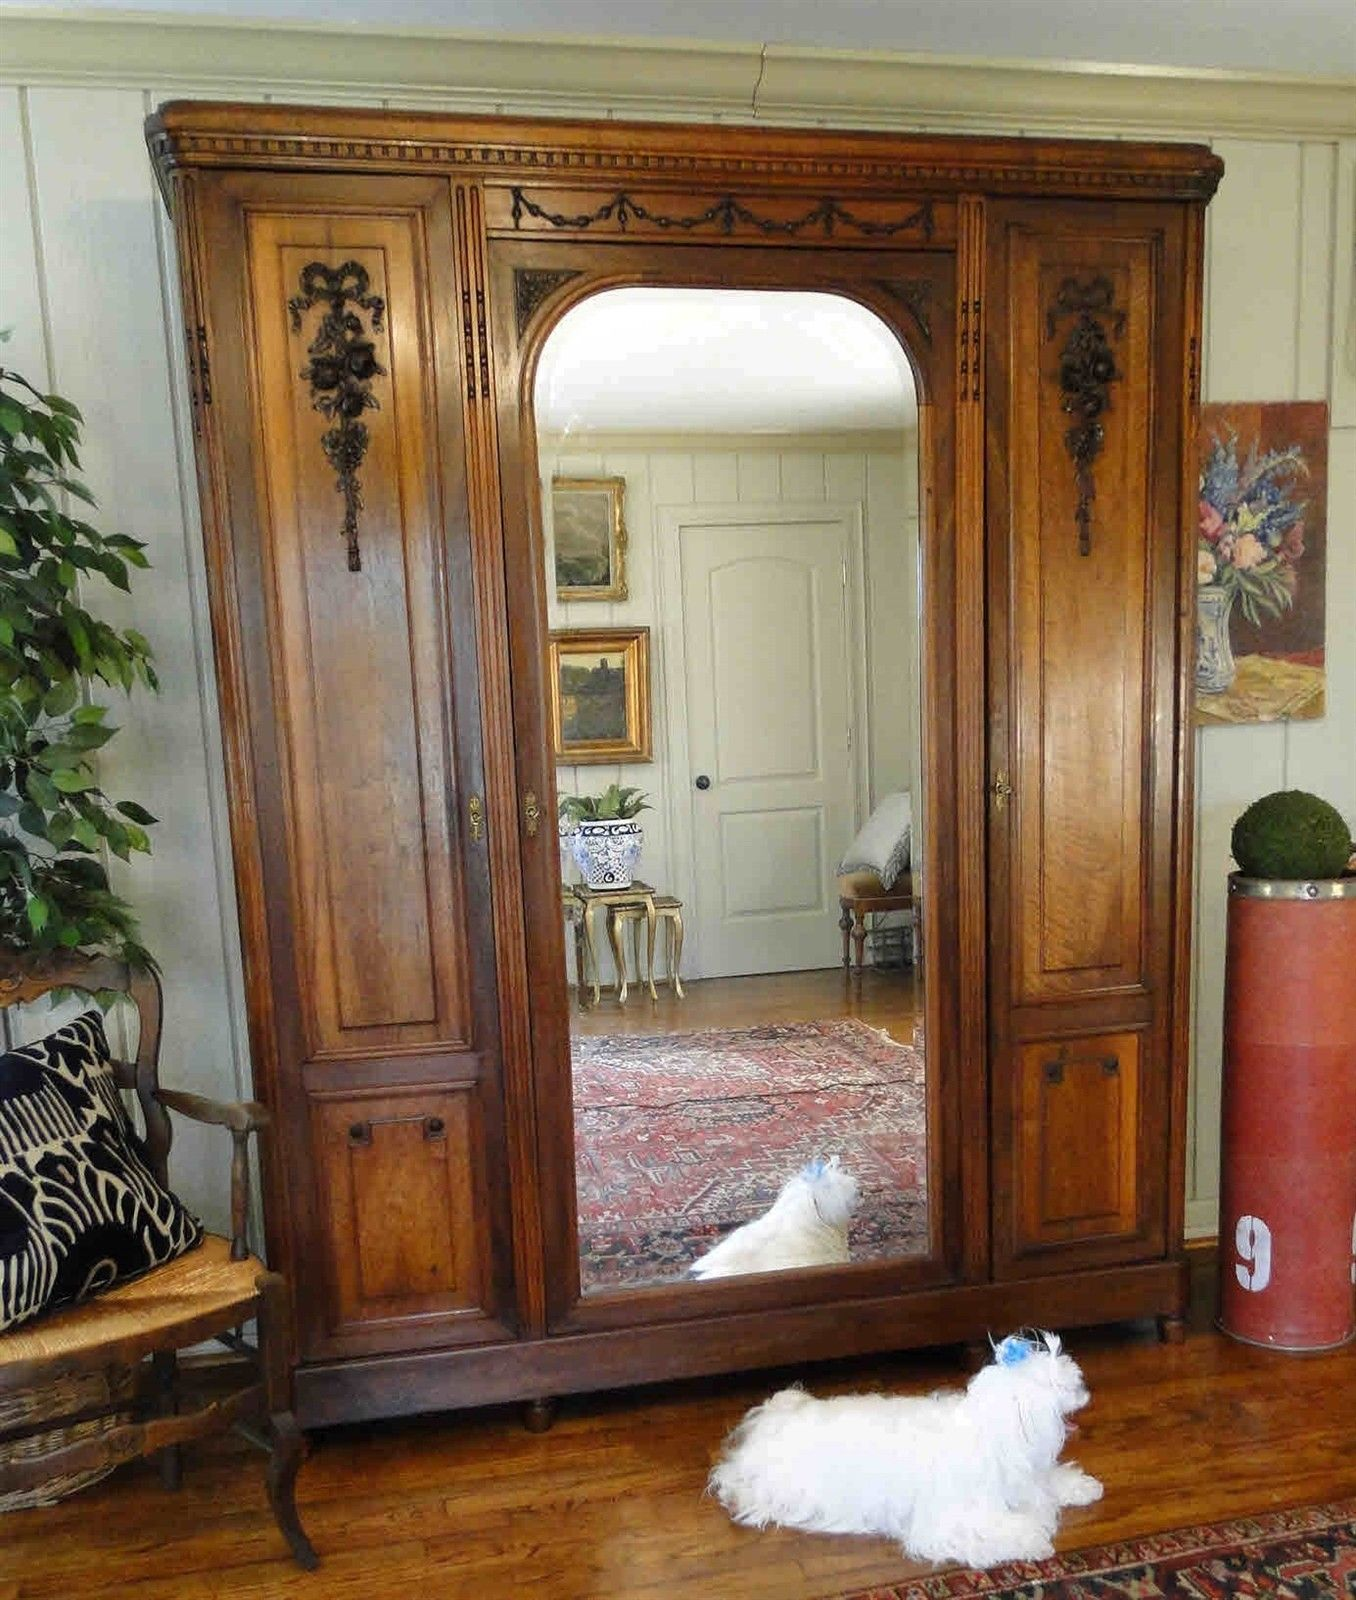 Antique French Armoire Wardrobe Large Beveled Mirror 3 Door Walnut Floral Carved